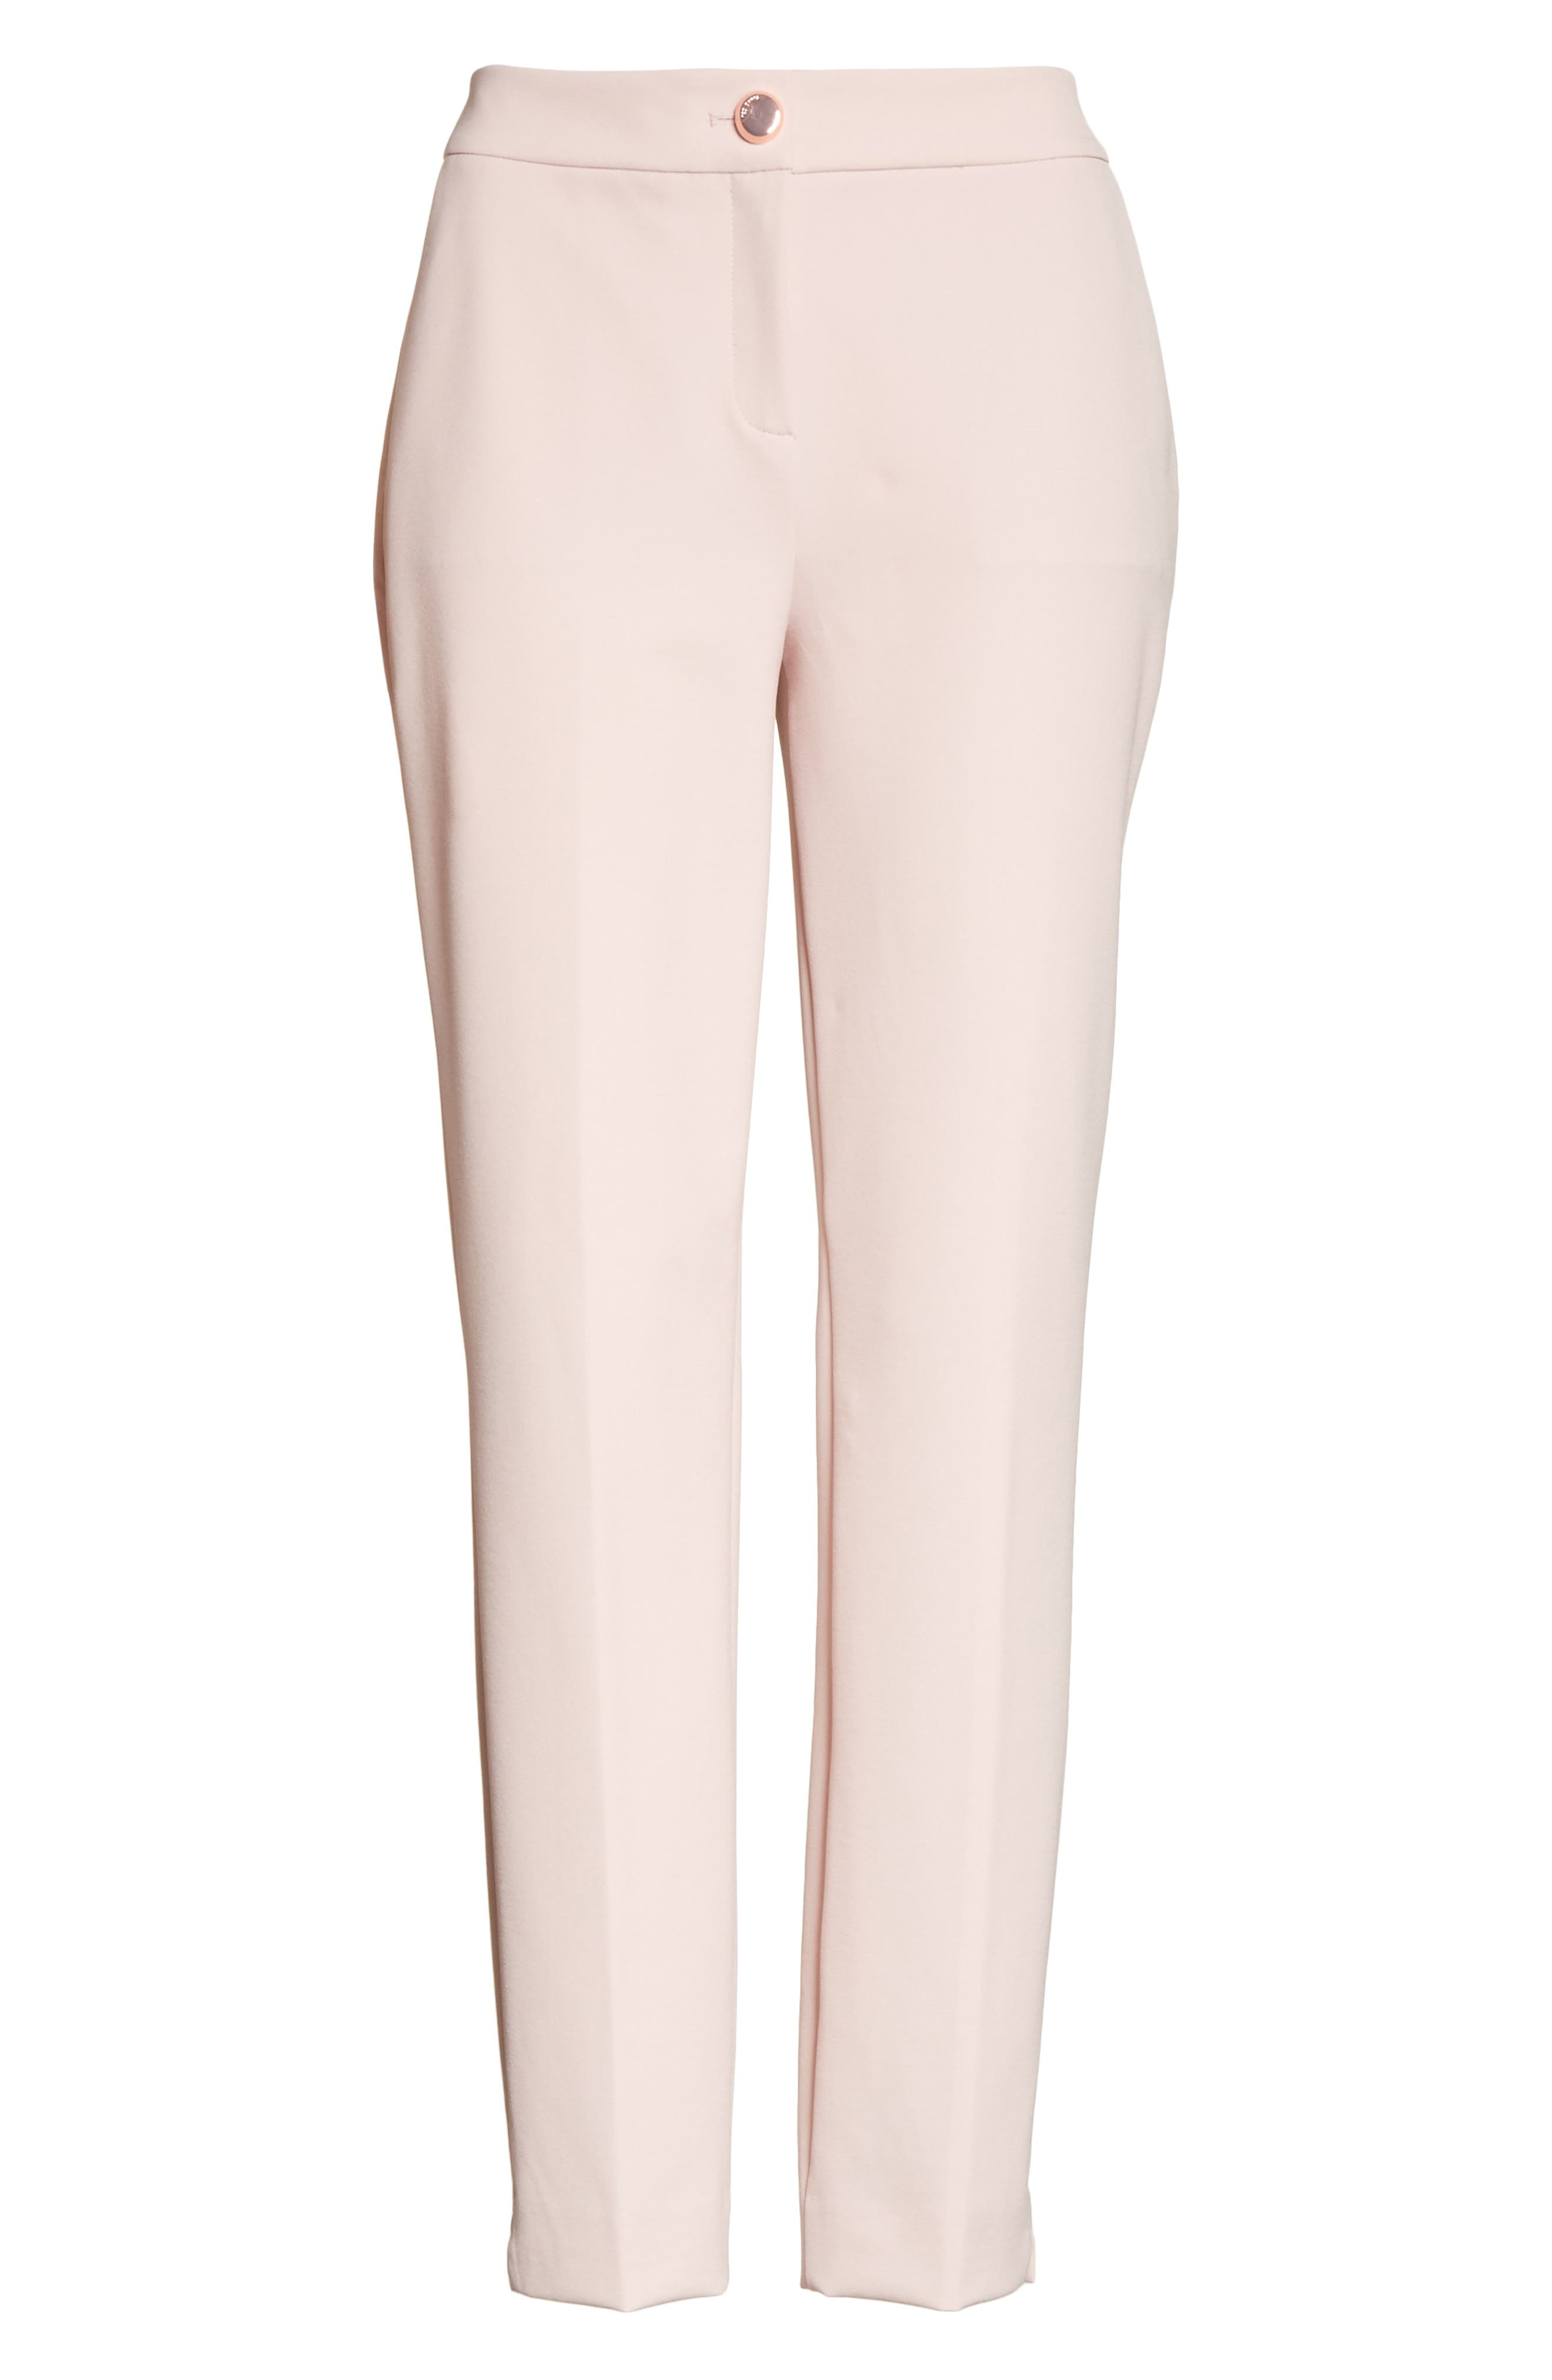 Suria Tailored Ankle Grazer Trousers,                             Alternate thumbnail 6, color,                             Pale Pink